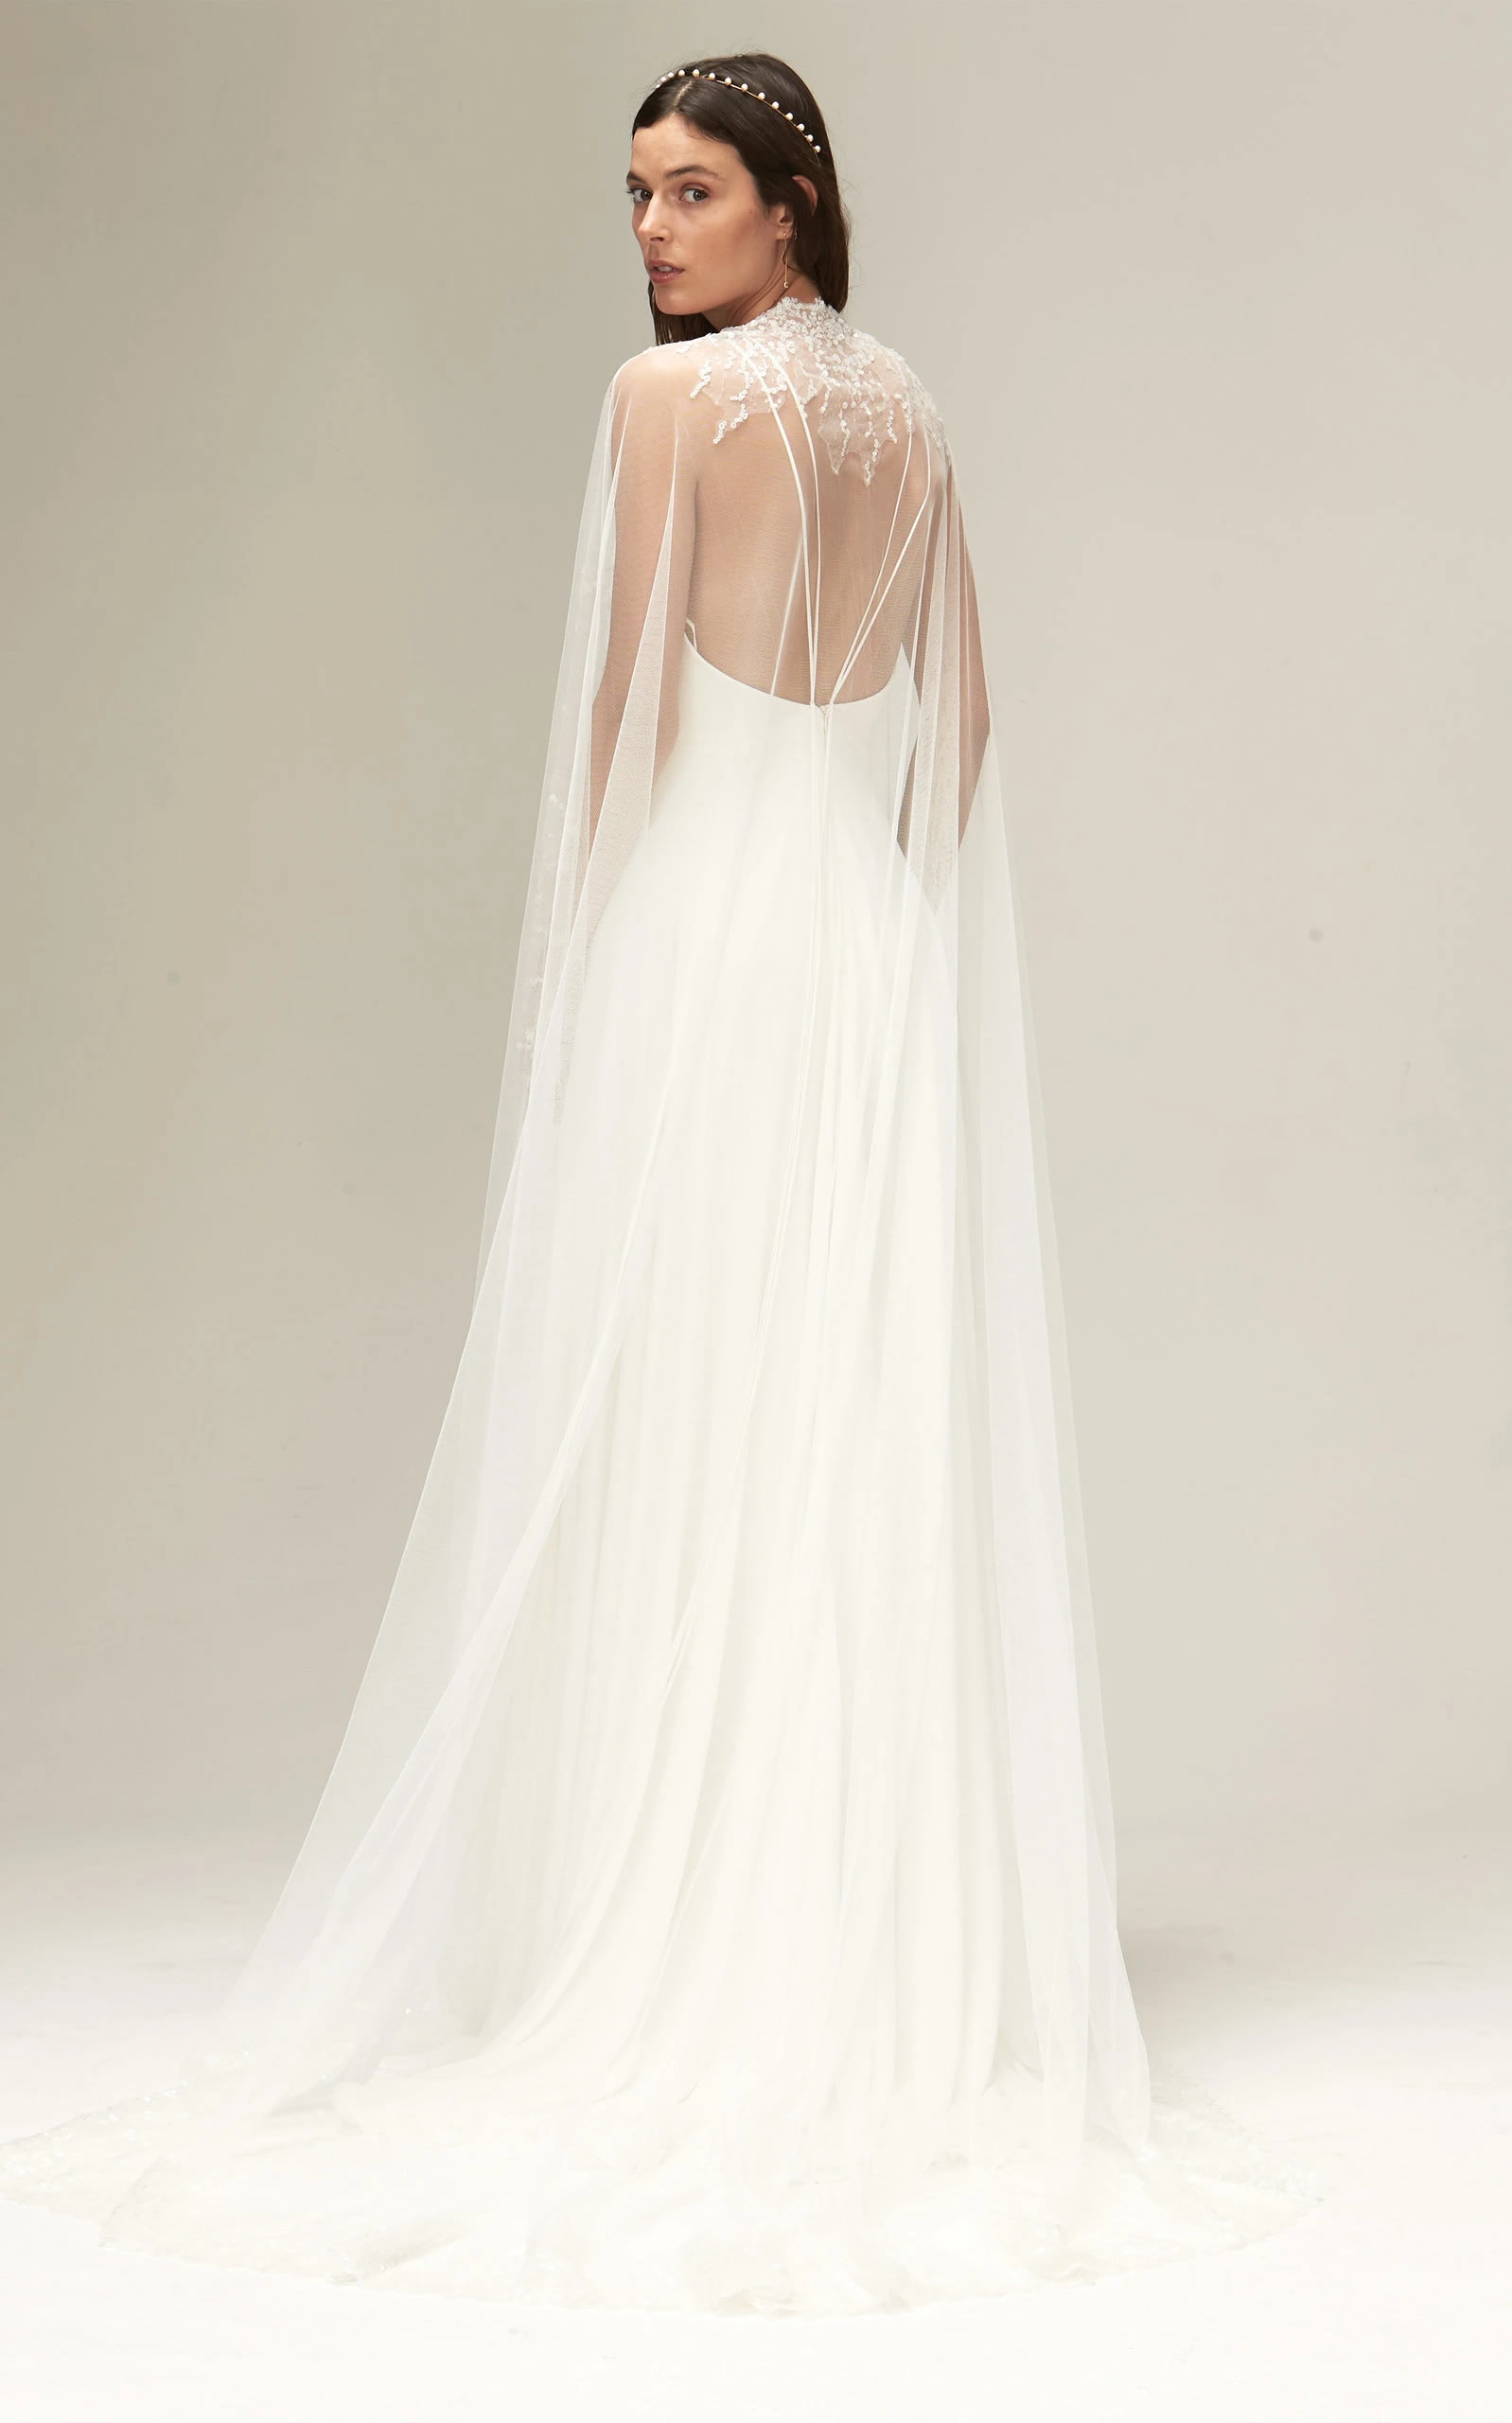 Savannah Miller - Vreeland Sequined Tulle Cape With Extended Train